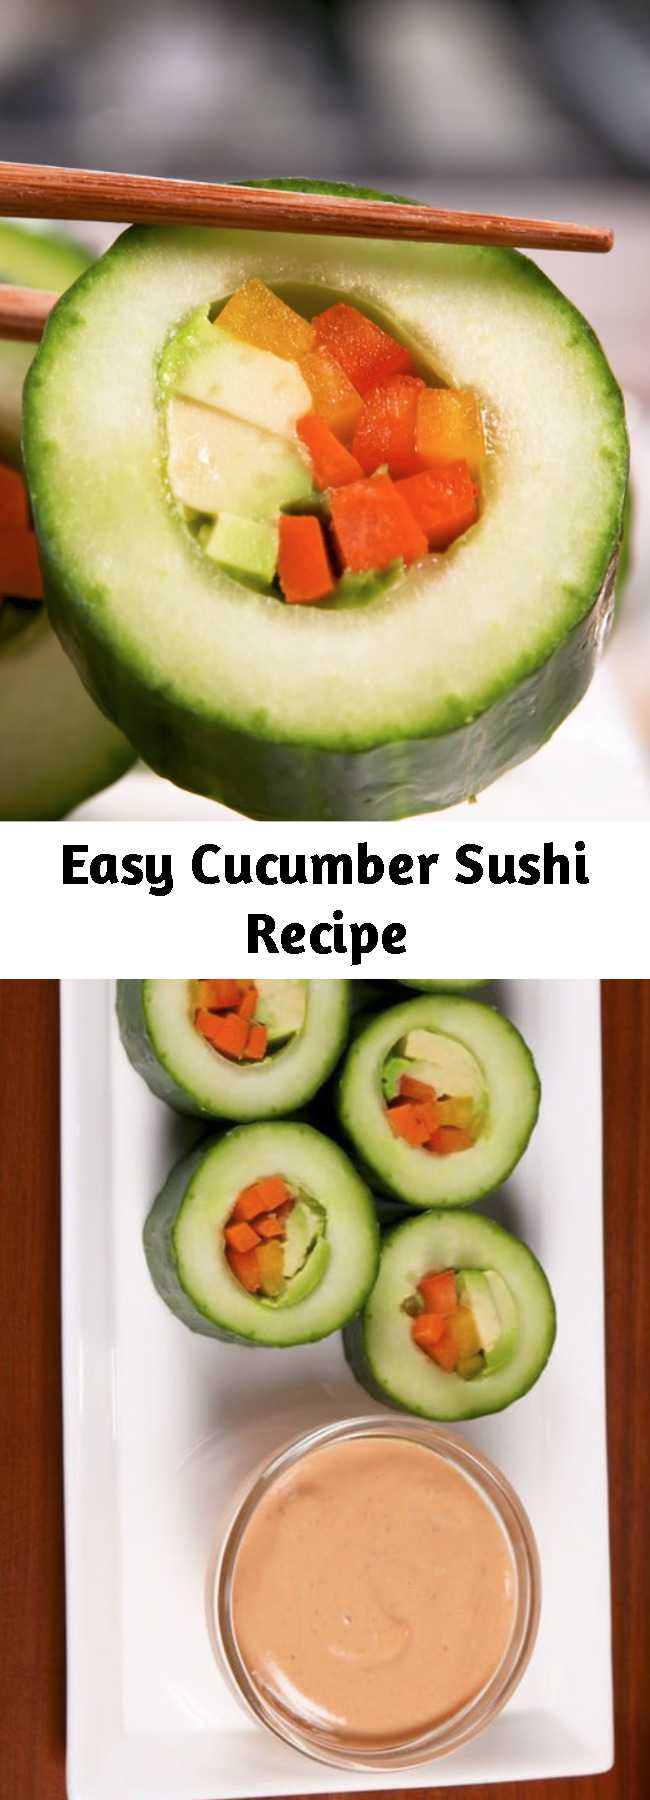 Easy Cucumber Sushi Recipe - We know it's not real sushi but we love it just the same. #food #easyrecipe #vegetarian #keto #healthyeating